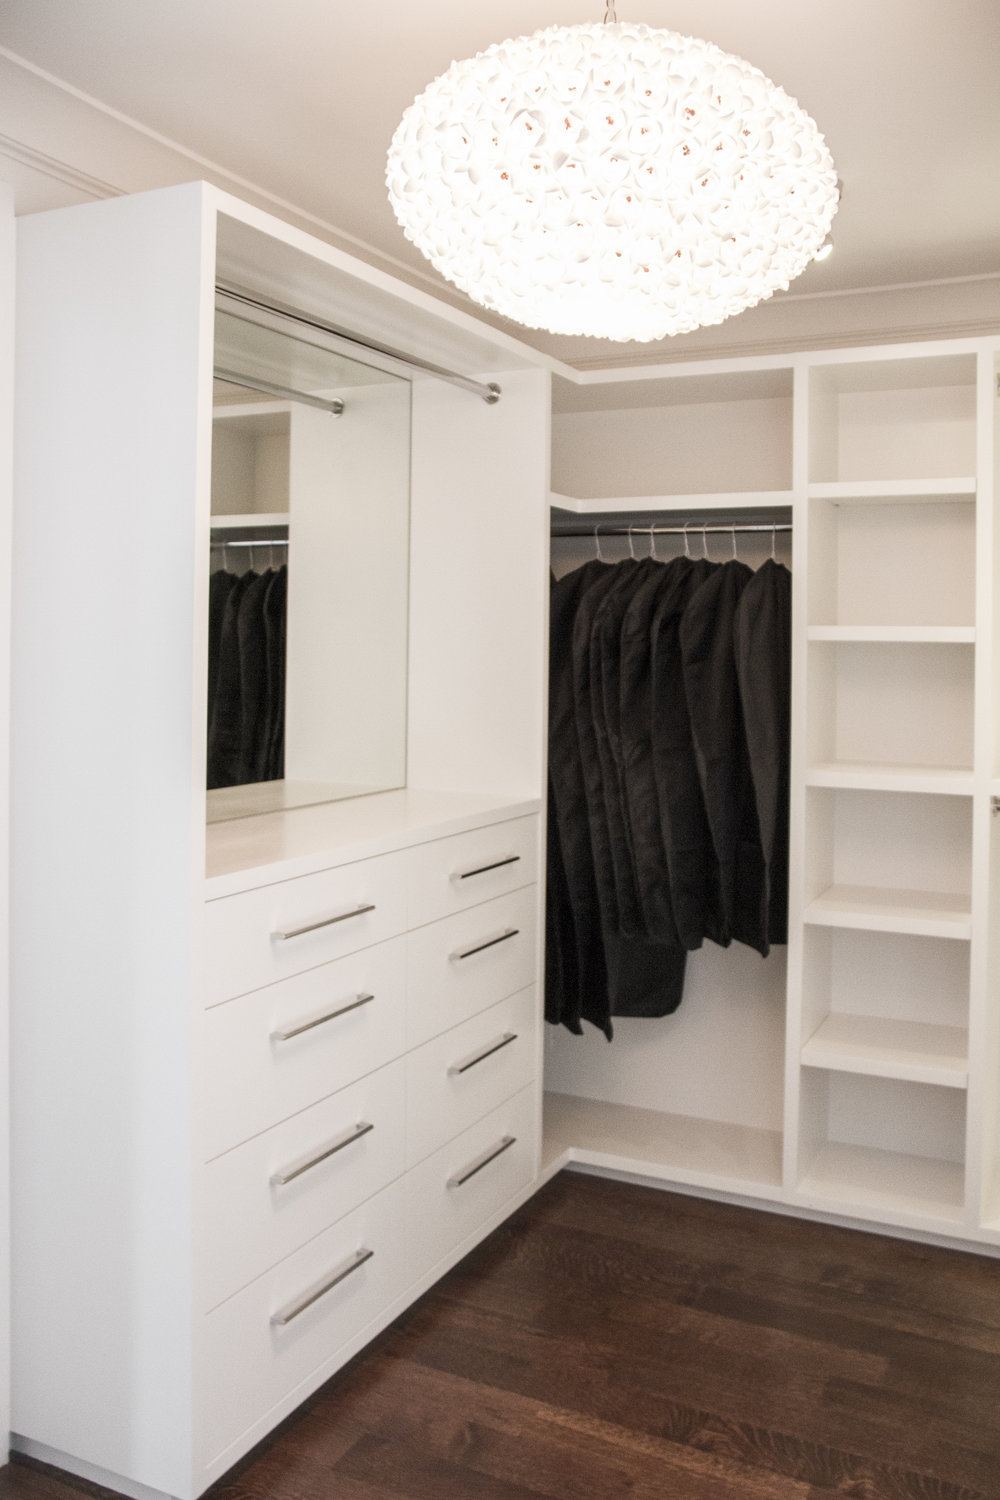 closet, white, modern, storage, wardrobe, hangers, clothes, clothes rack, hardwood floor